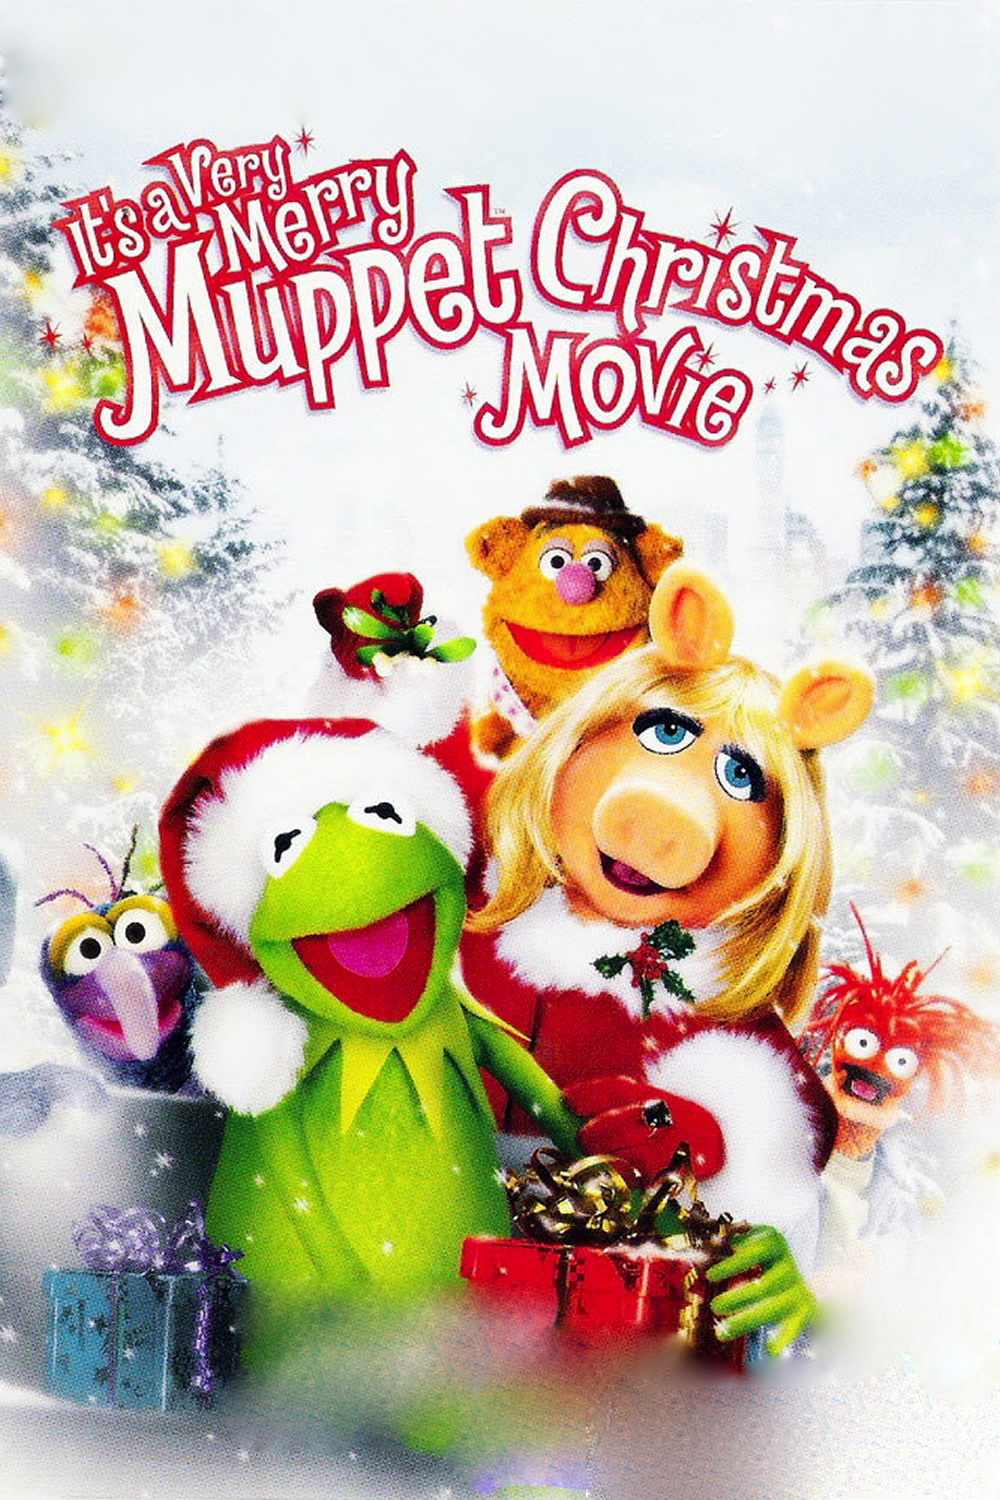 It's ALWAYS a merry Christmas with The Muppets!